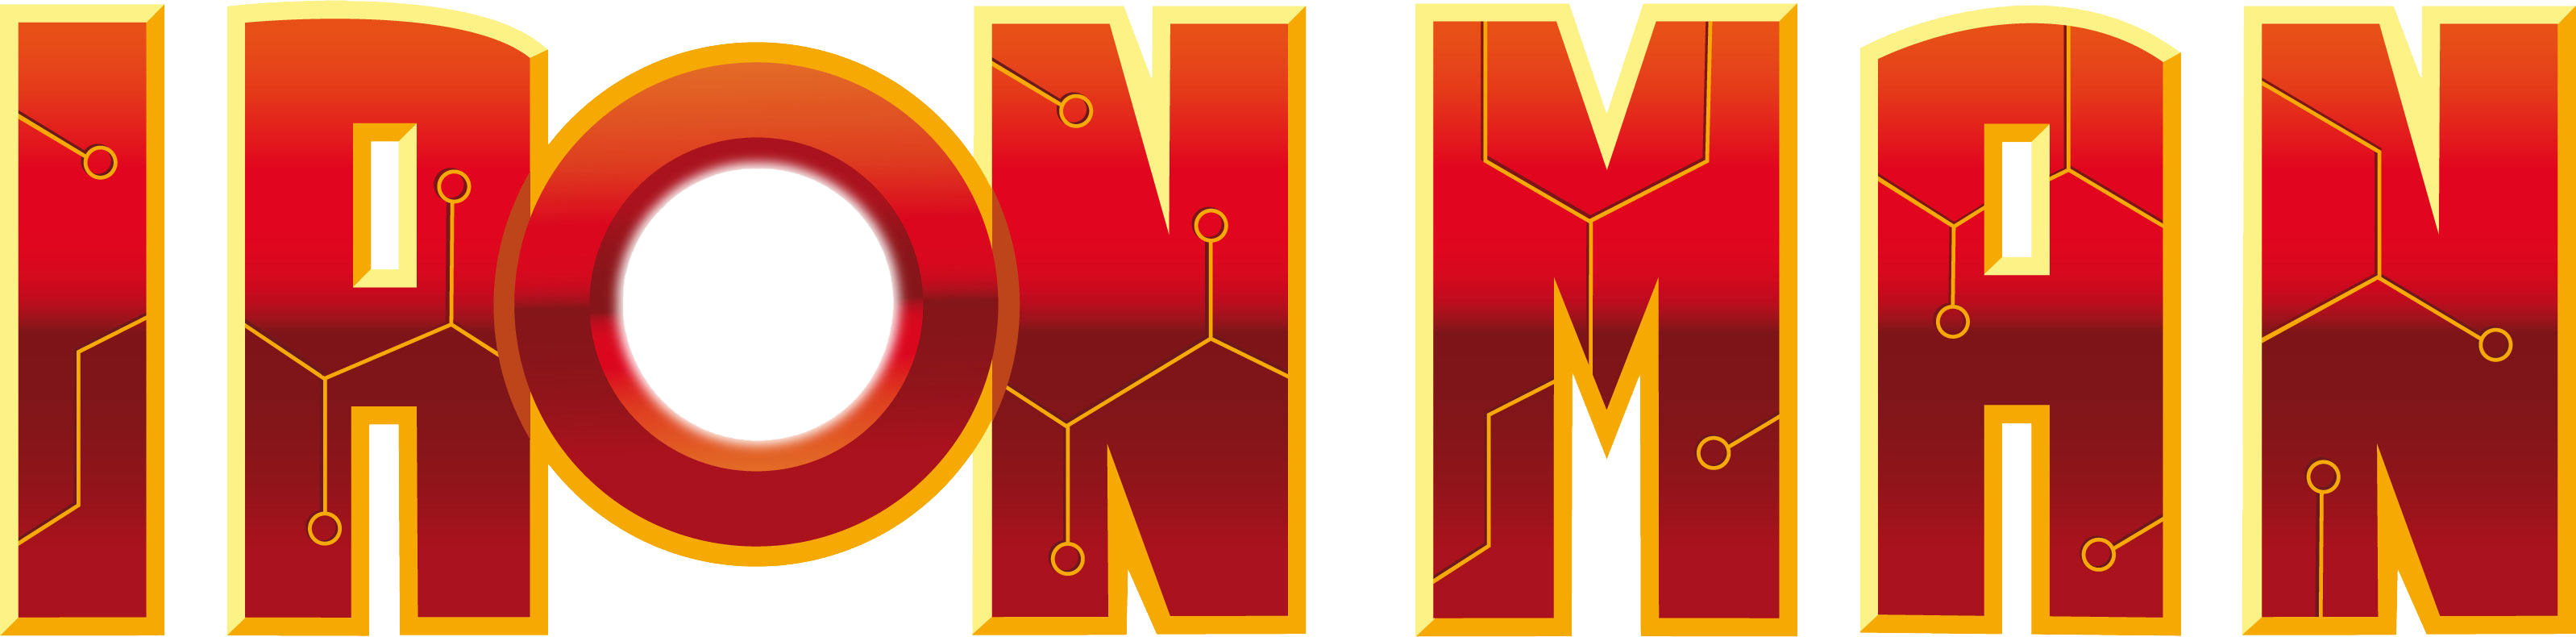 Iron man logo png. Ironman